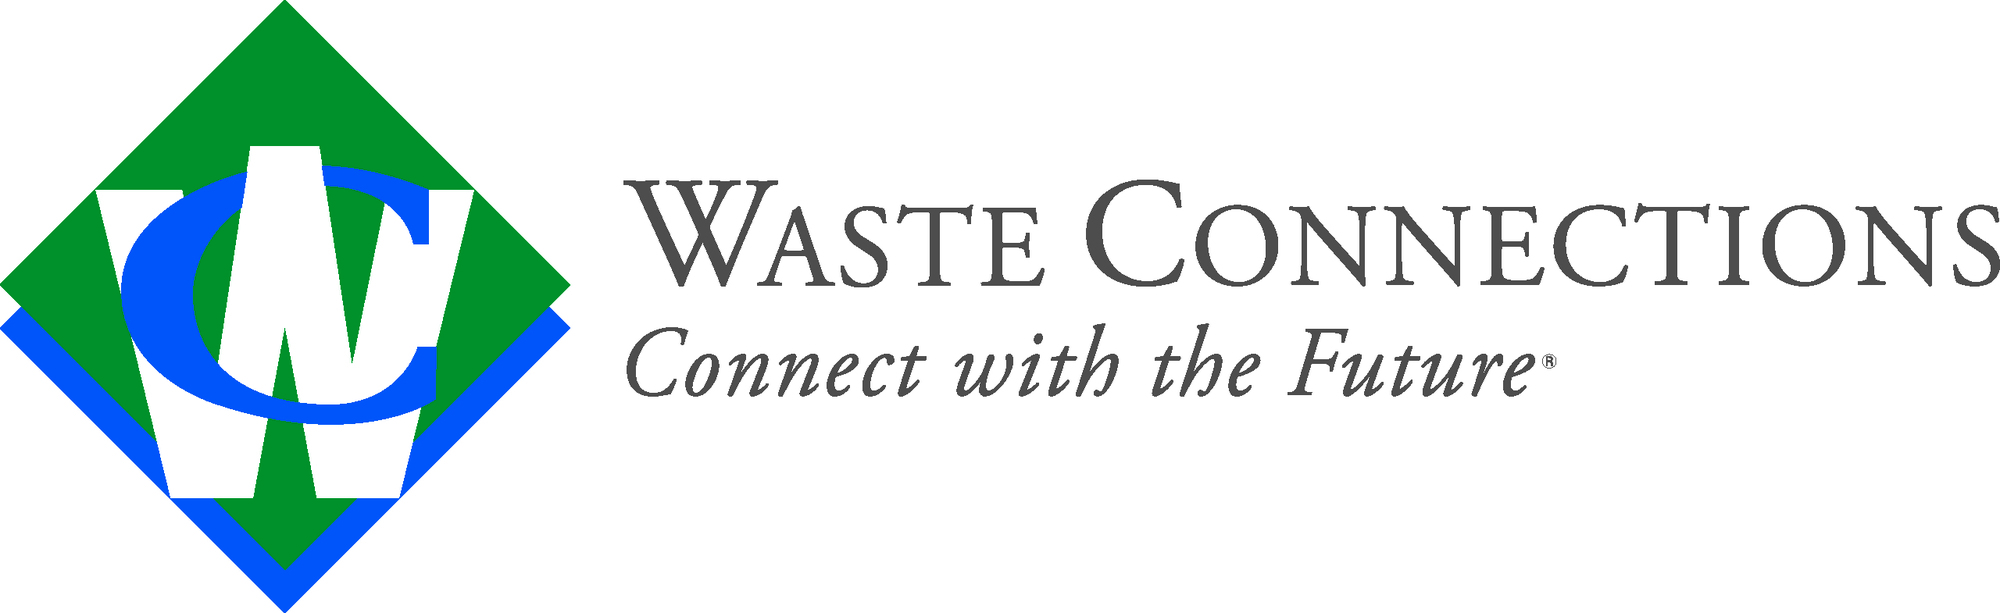 Waste Connections Of Tennessee Inc 386 Industrial Dr Sw